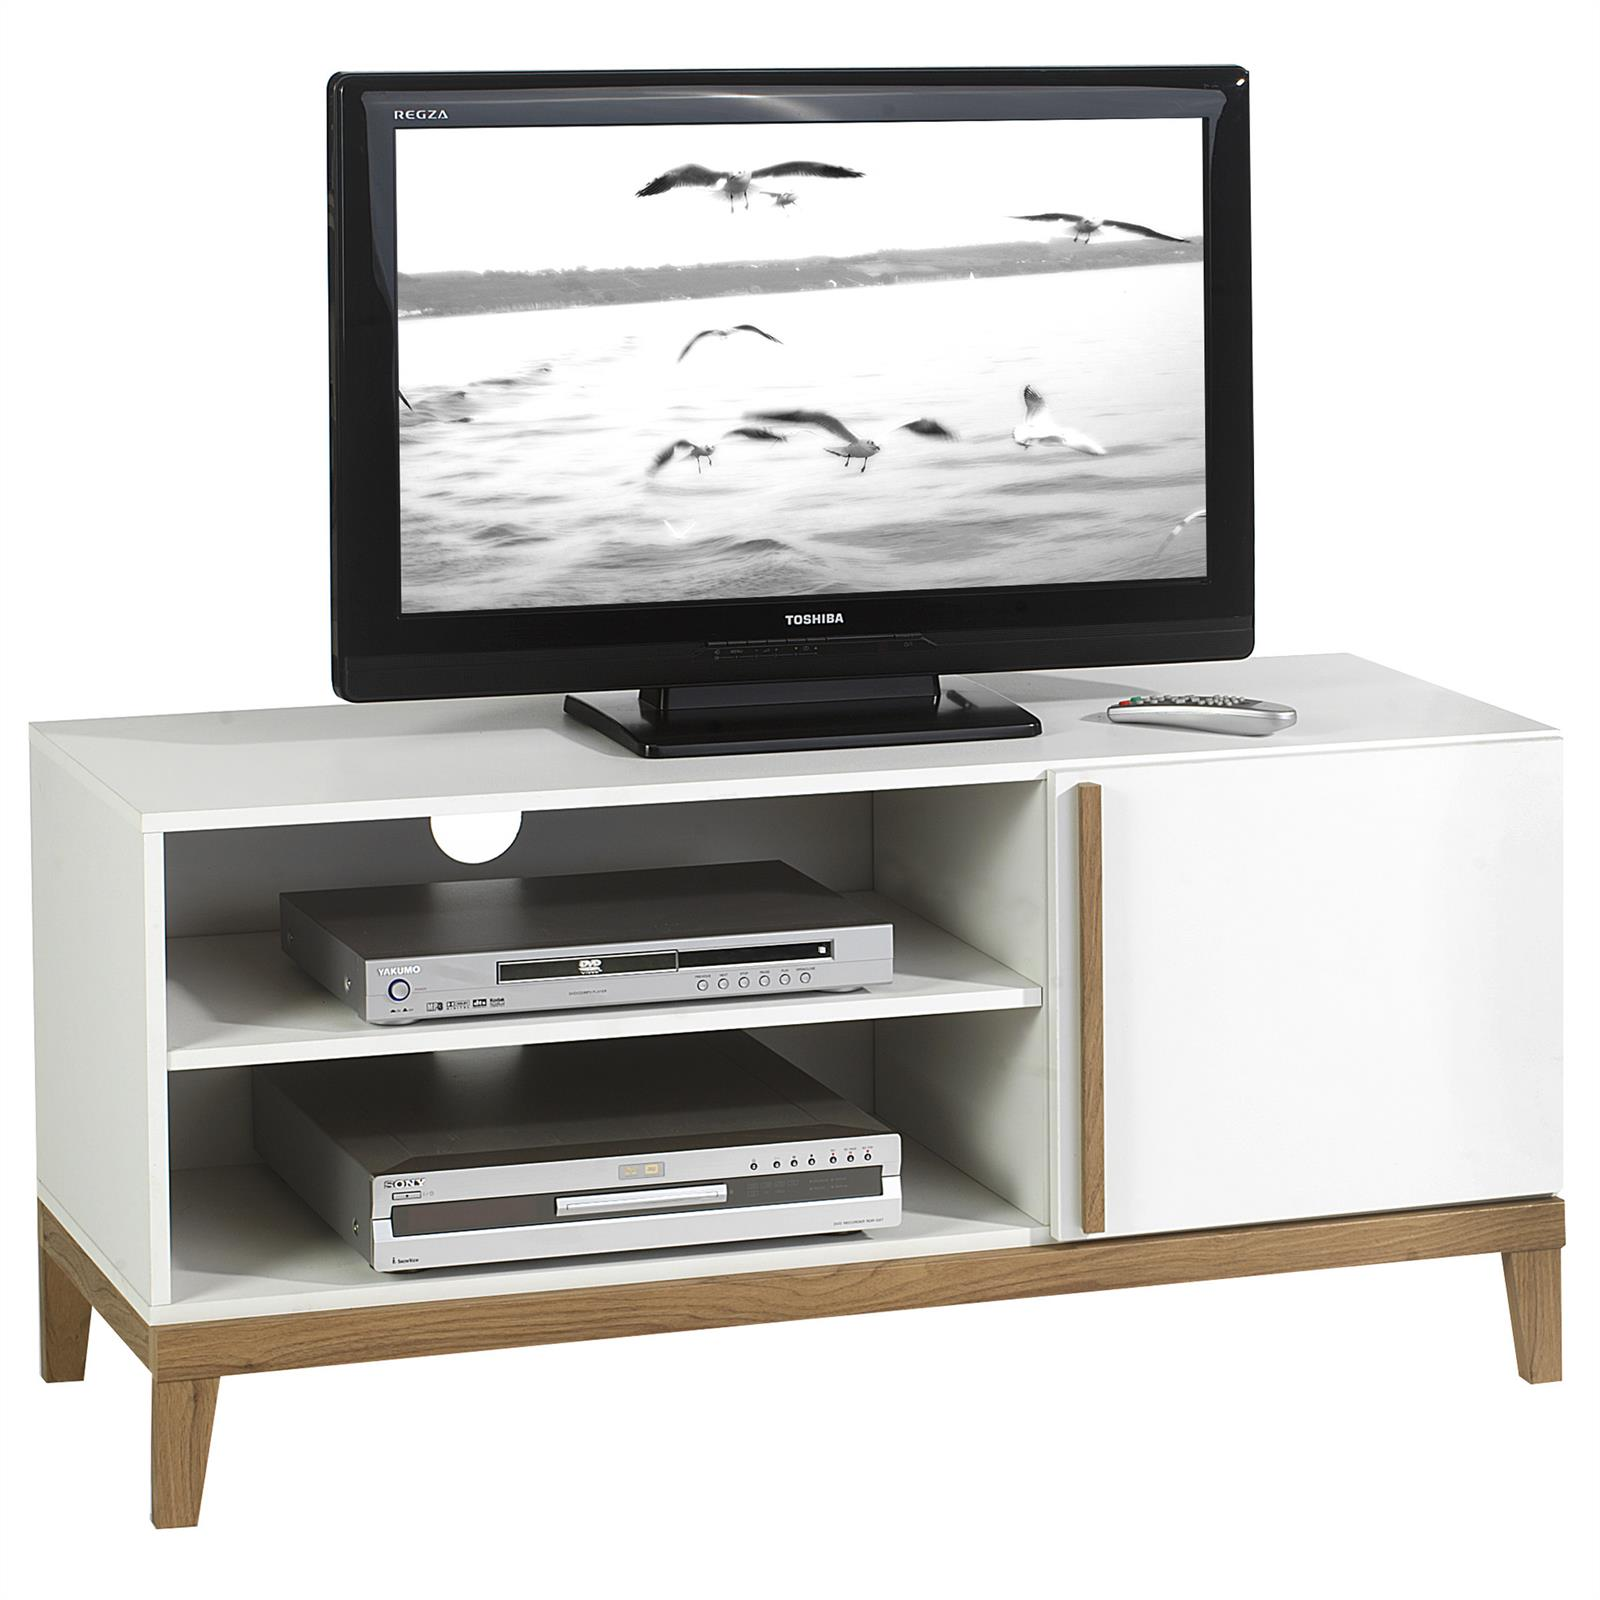 Meuble tv riga 2 niches 1 porte blanc et bois mobil for Meuble tv porte